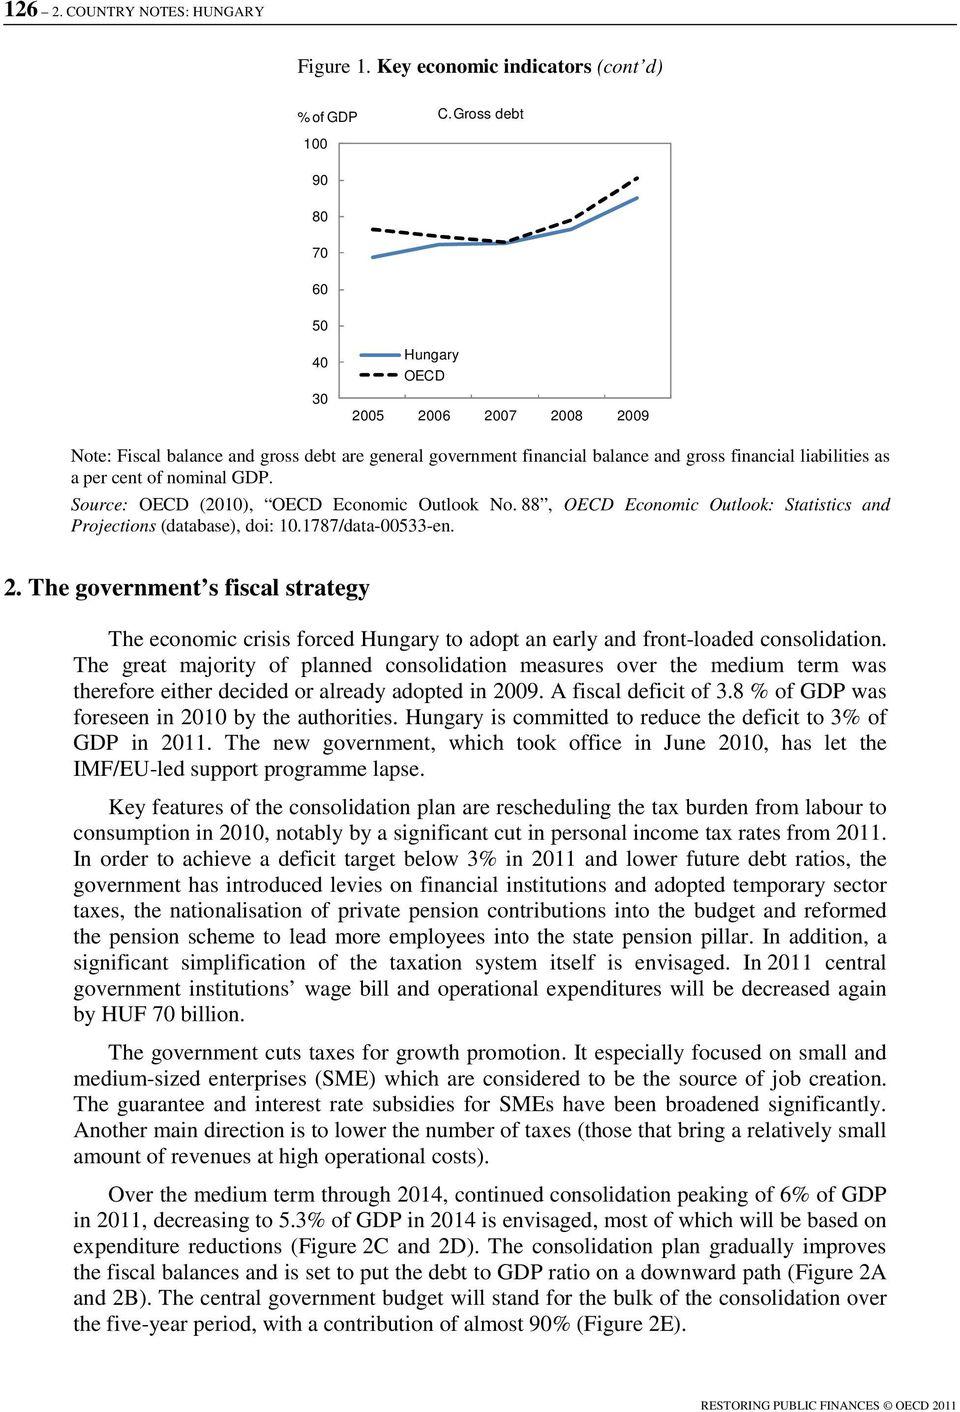 Source: OECD (21), OECD Economic Outlook No. 88, OECD Economic Outlook: Statistics and Projections (database), doi: 1.1787/data-533-en. 2.